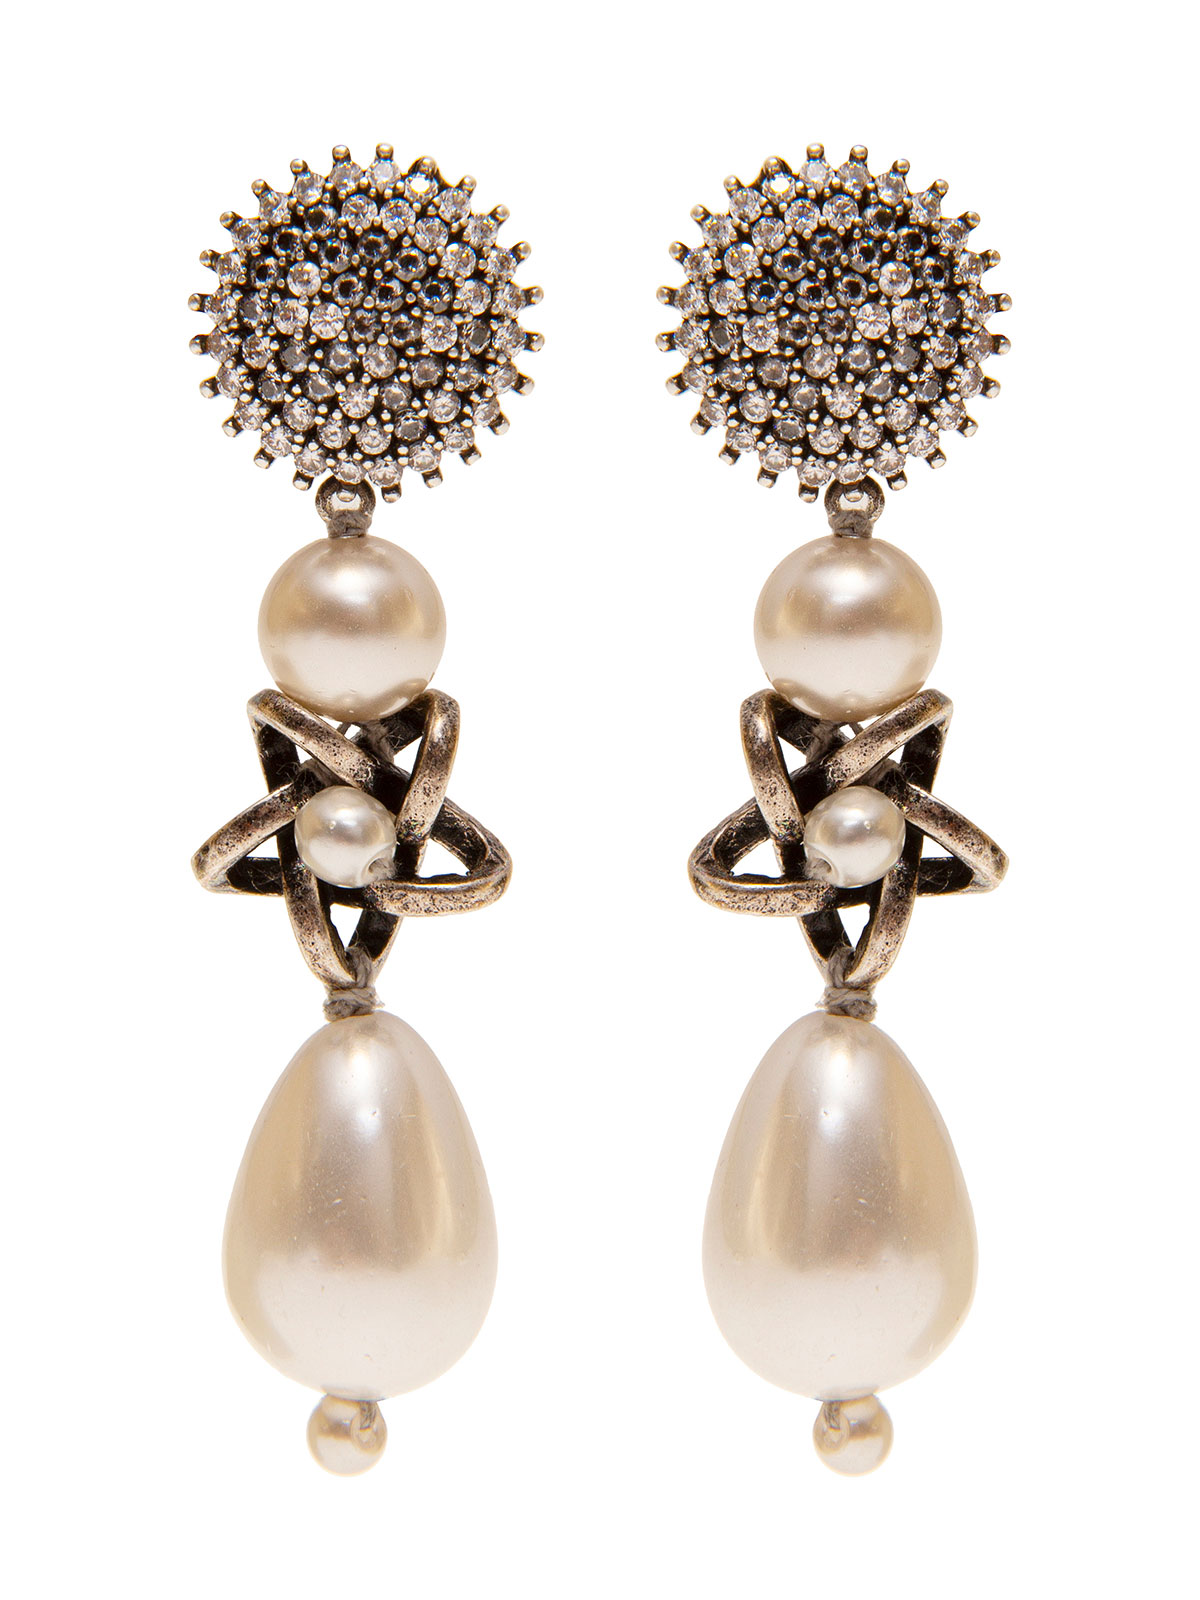 Crystal earrings with pendent pearl and star